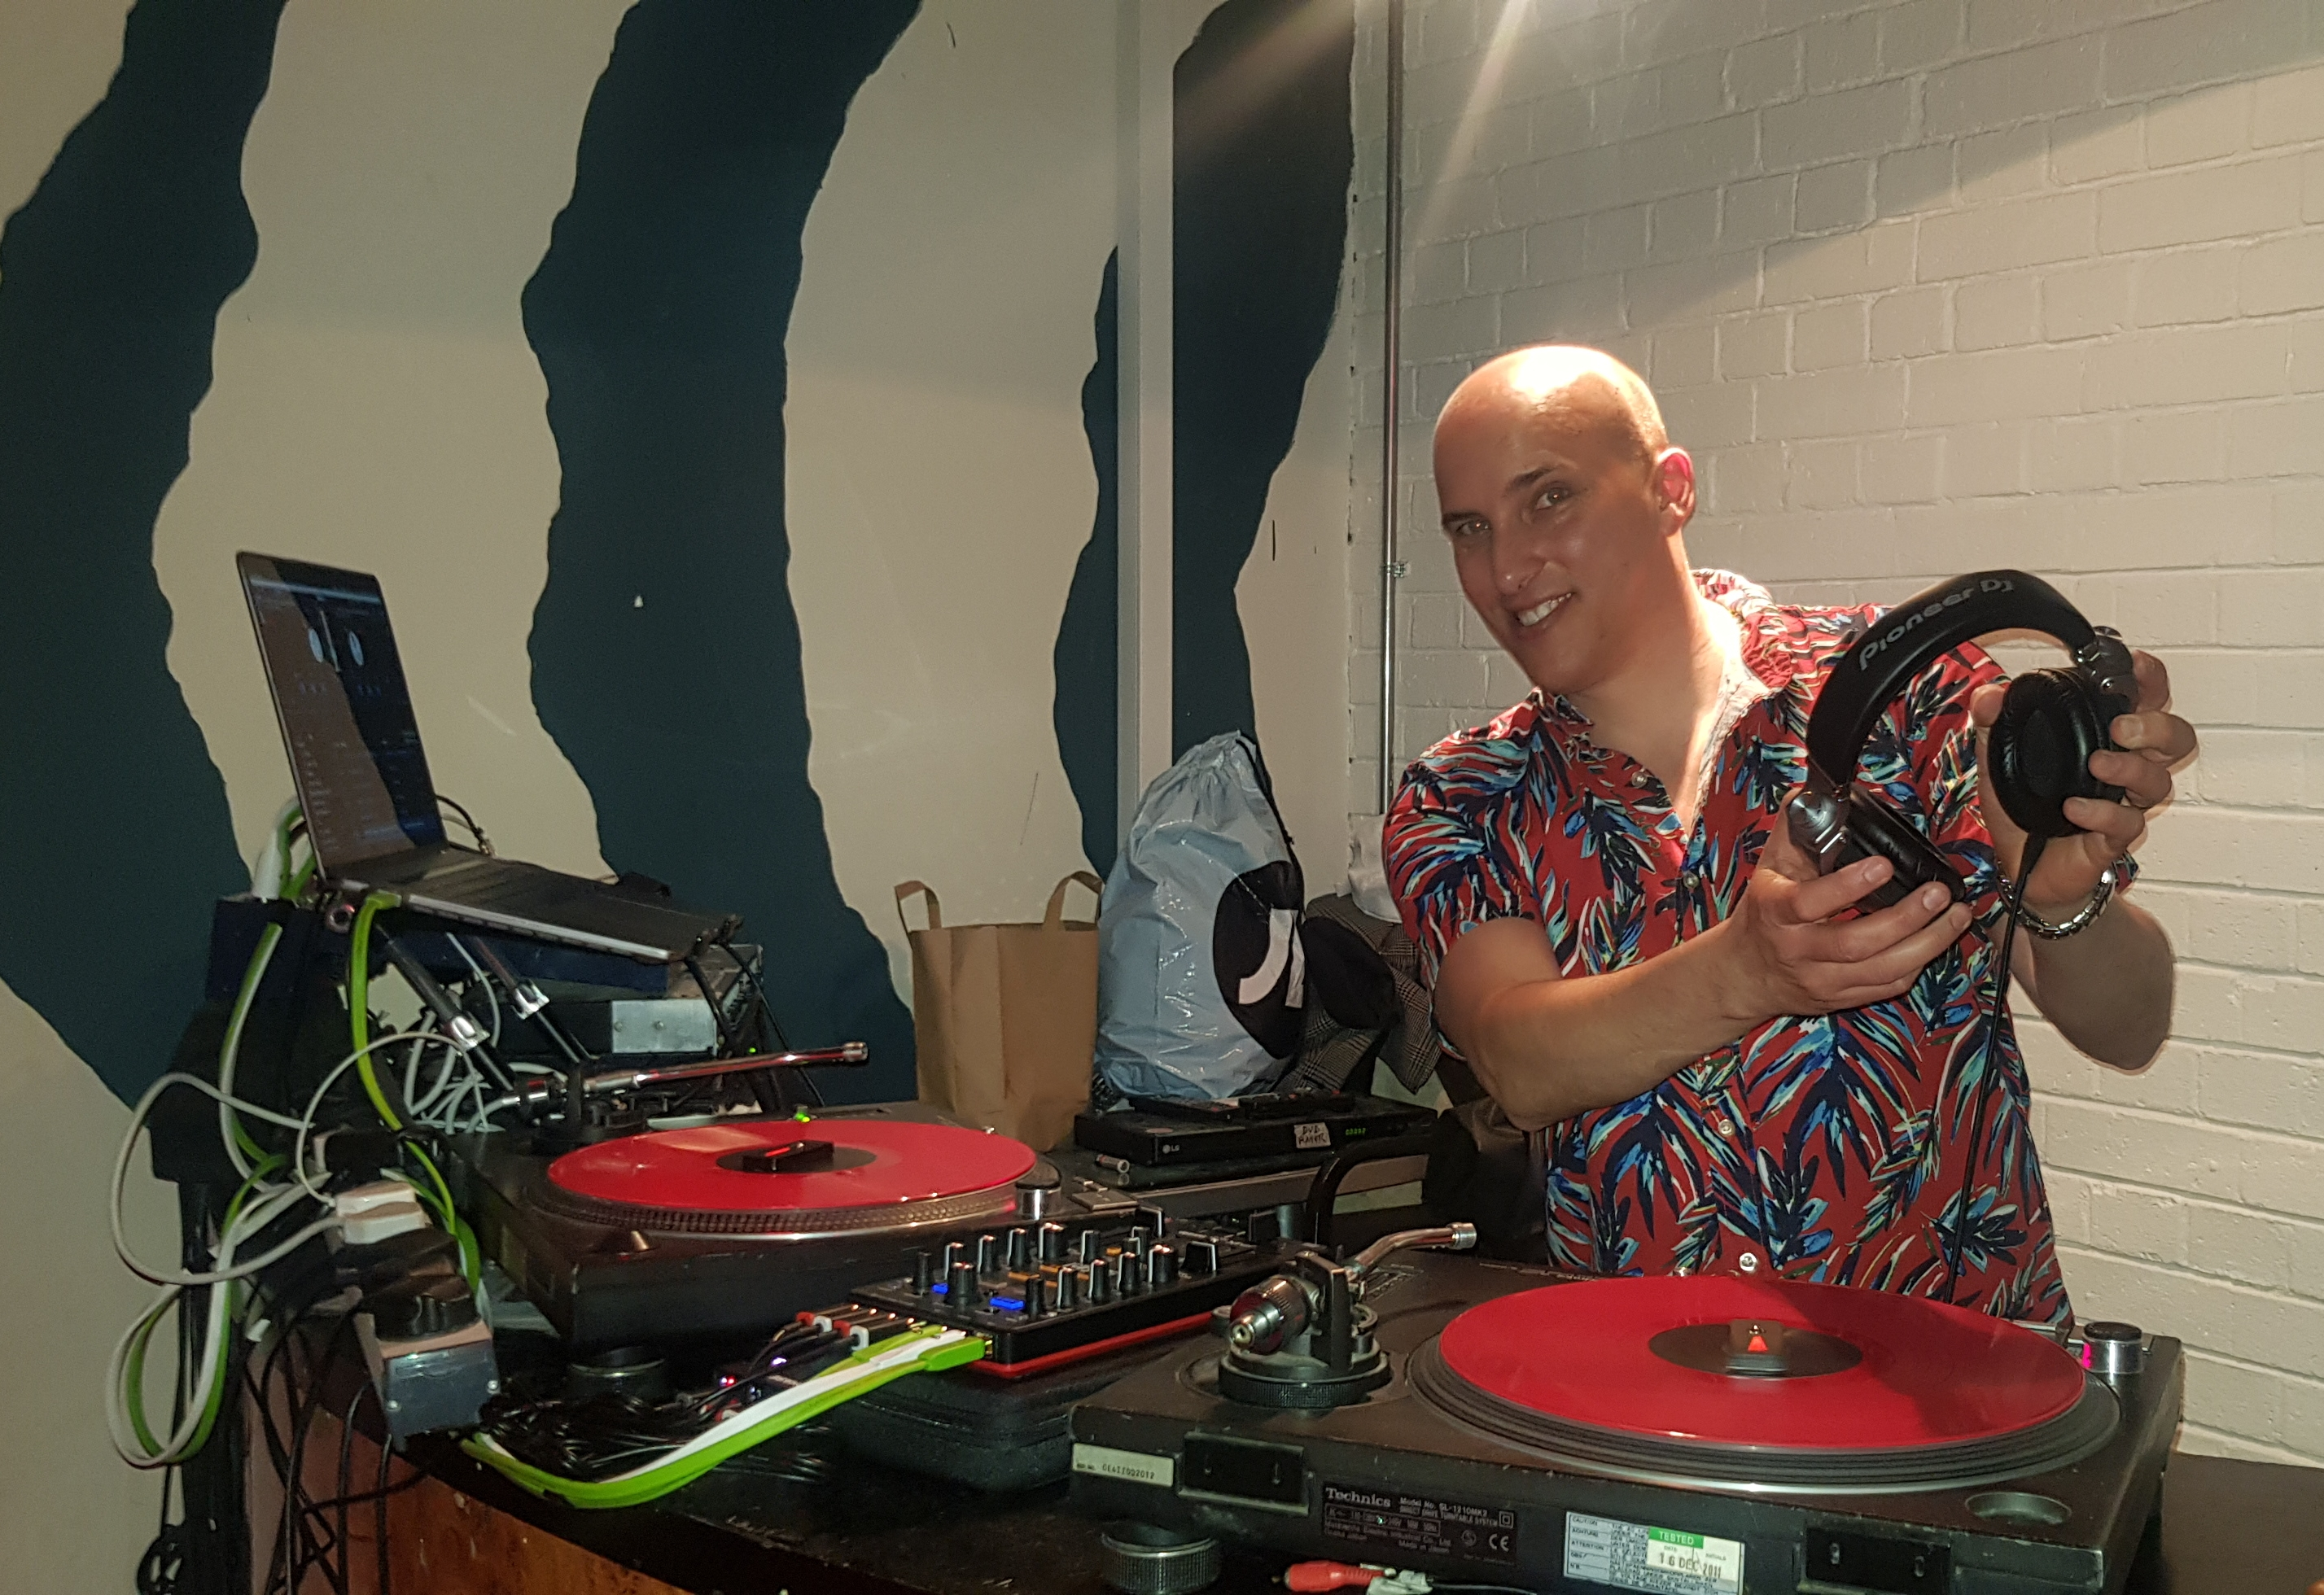 Turntables With Red Vinyls